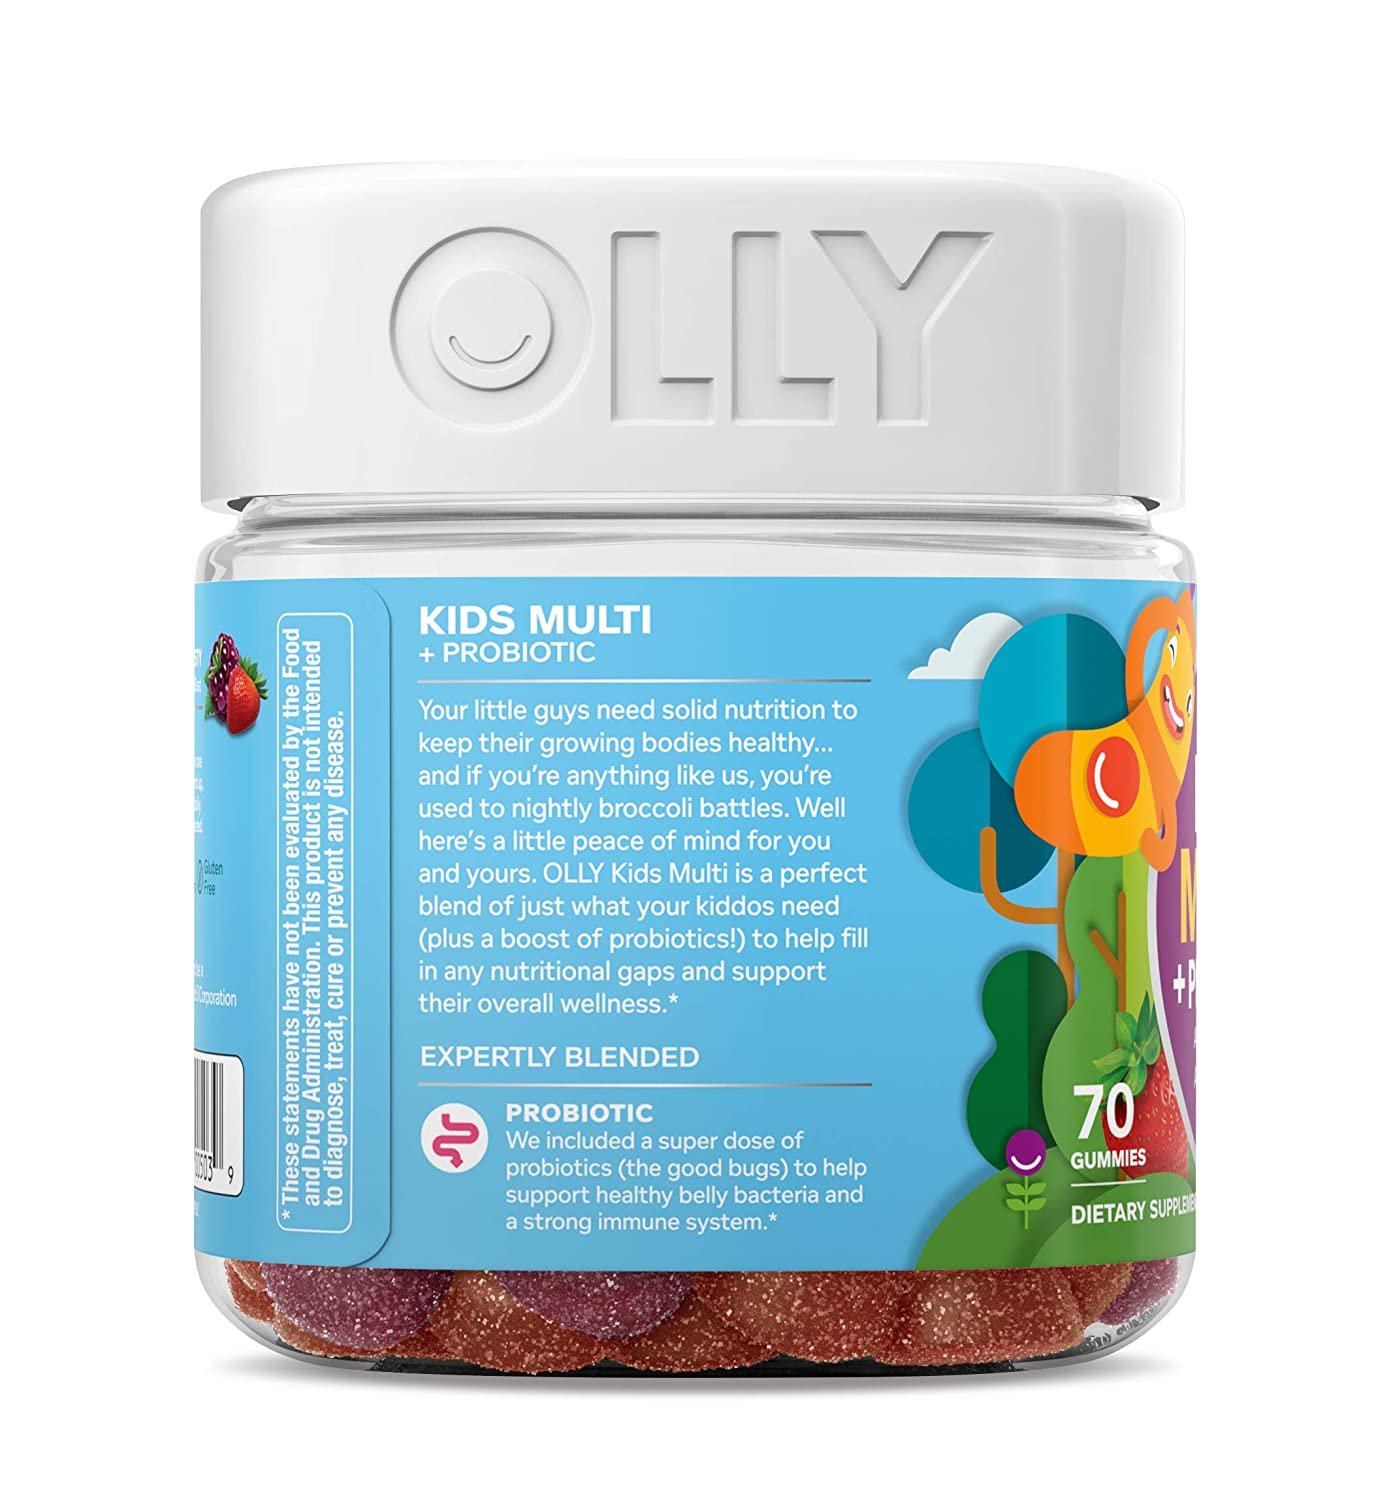 Olly Kids Multivitamin Probiotic Gummy Supplement With Wellness 70 Zinc Probiotics Yum Berry Punch Gummies 35 Day Supply Health Personal Care